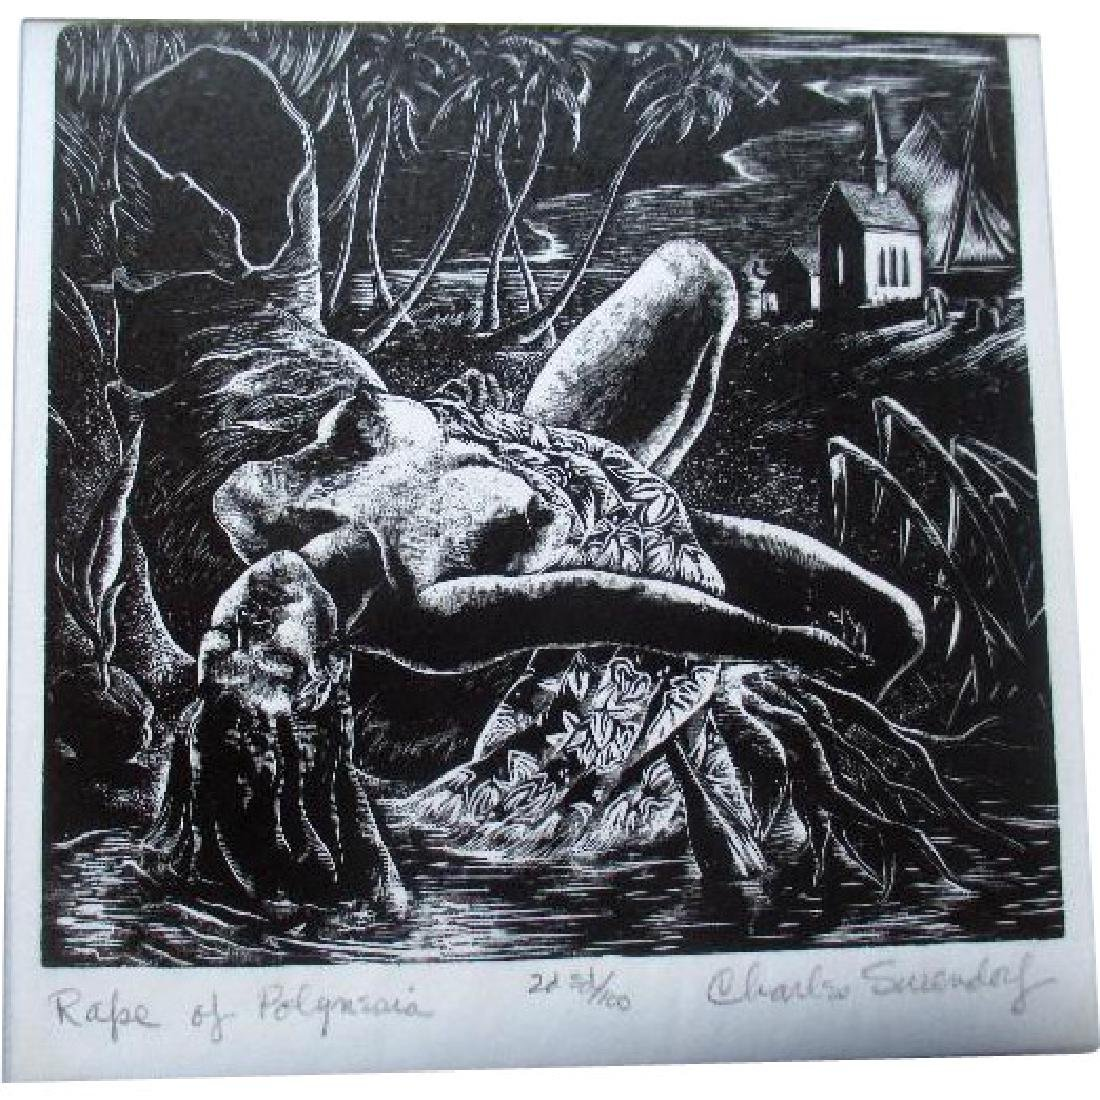 Signed / Numbered Linocut by Charles Surendorf - The